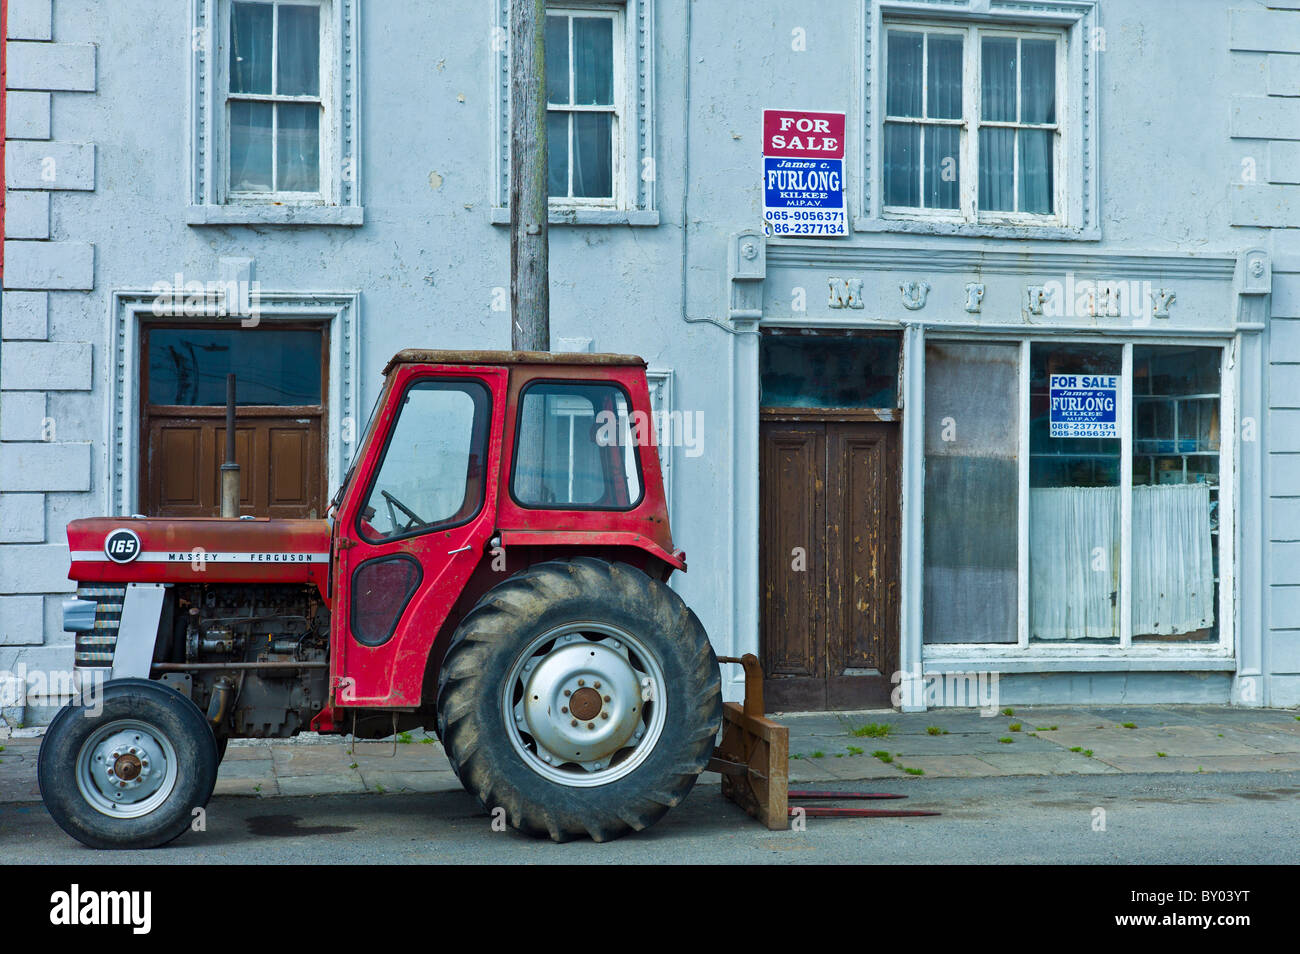 Tractor parked at Murphy shop with estate agent For Sale boards in, Kilkee, County Clare, West of Ireland - Stock Image